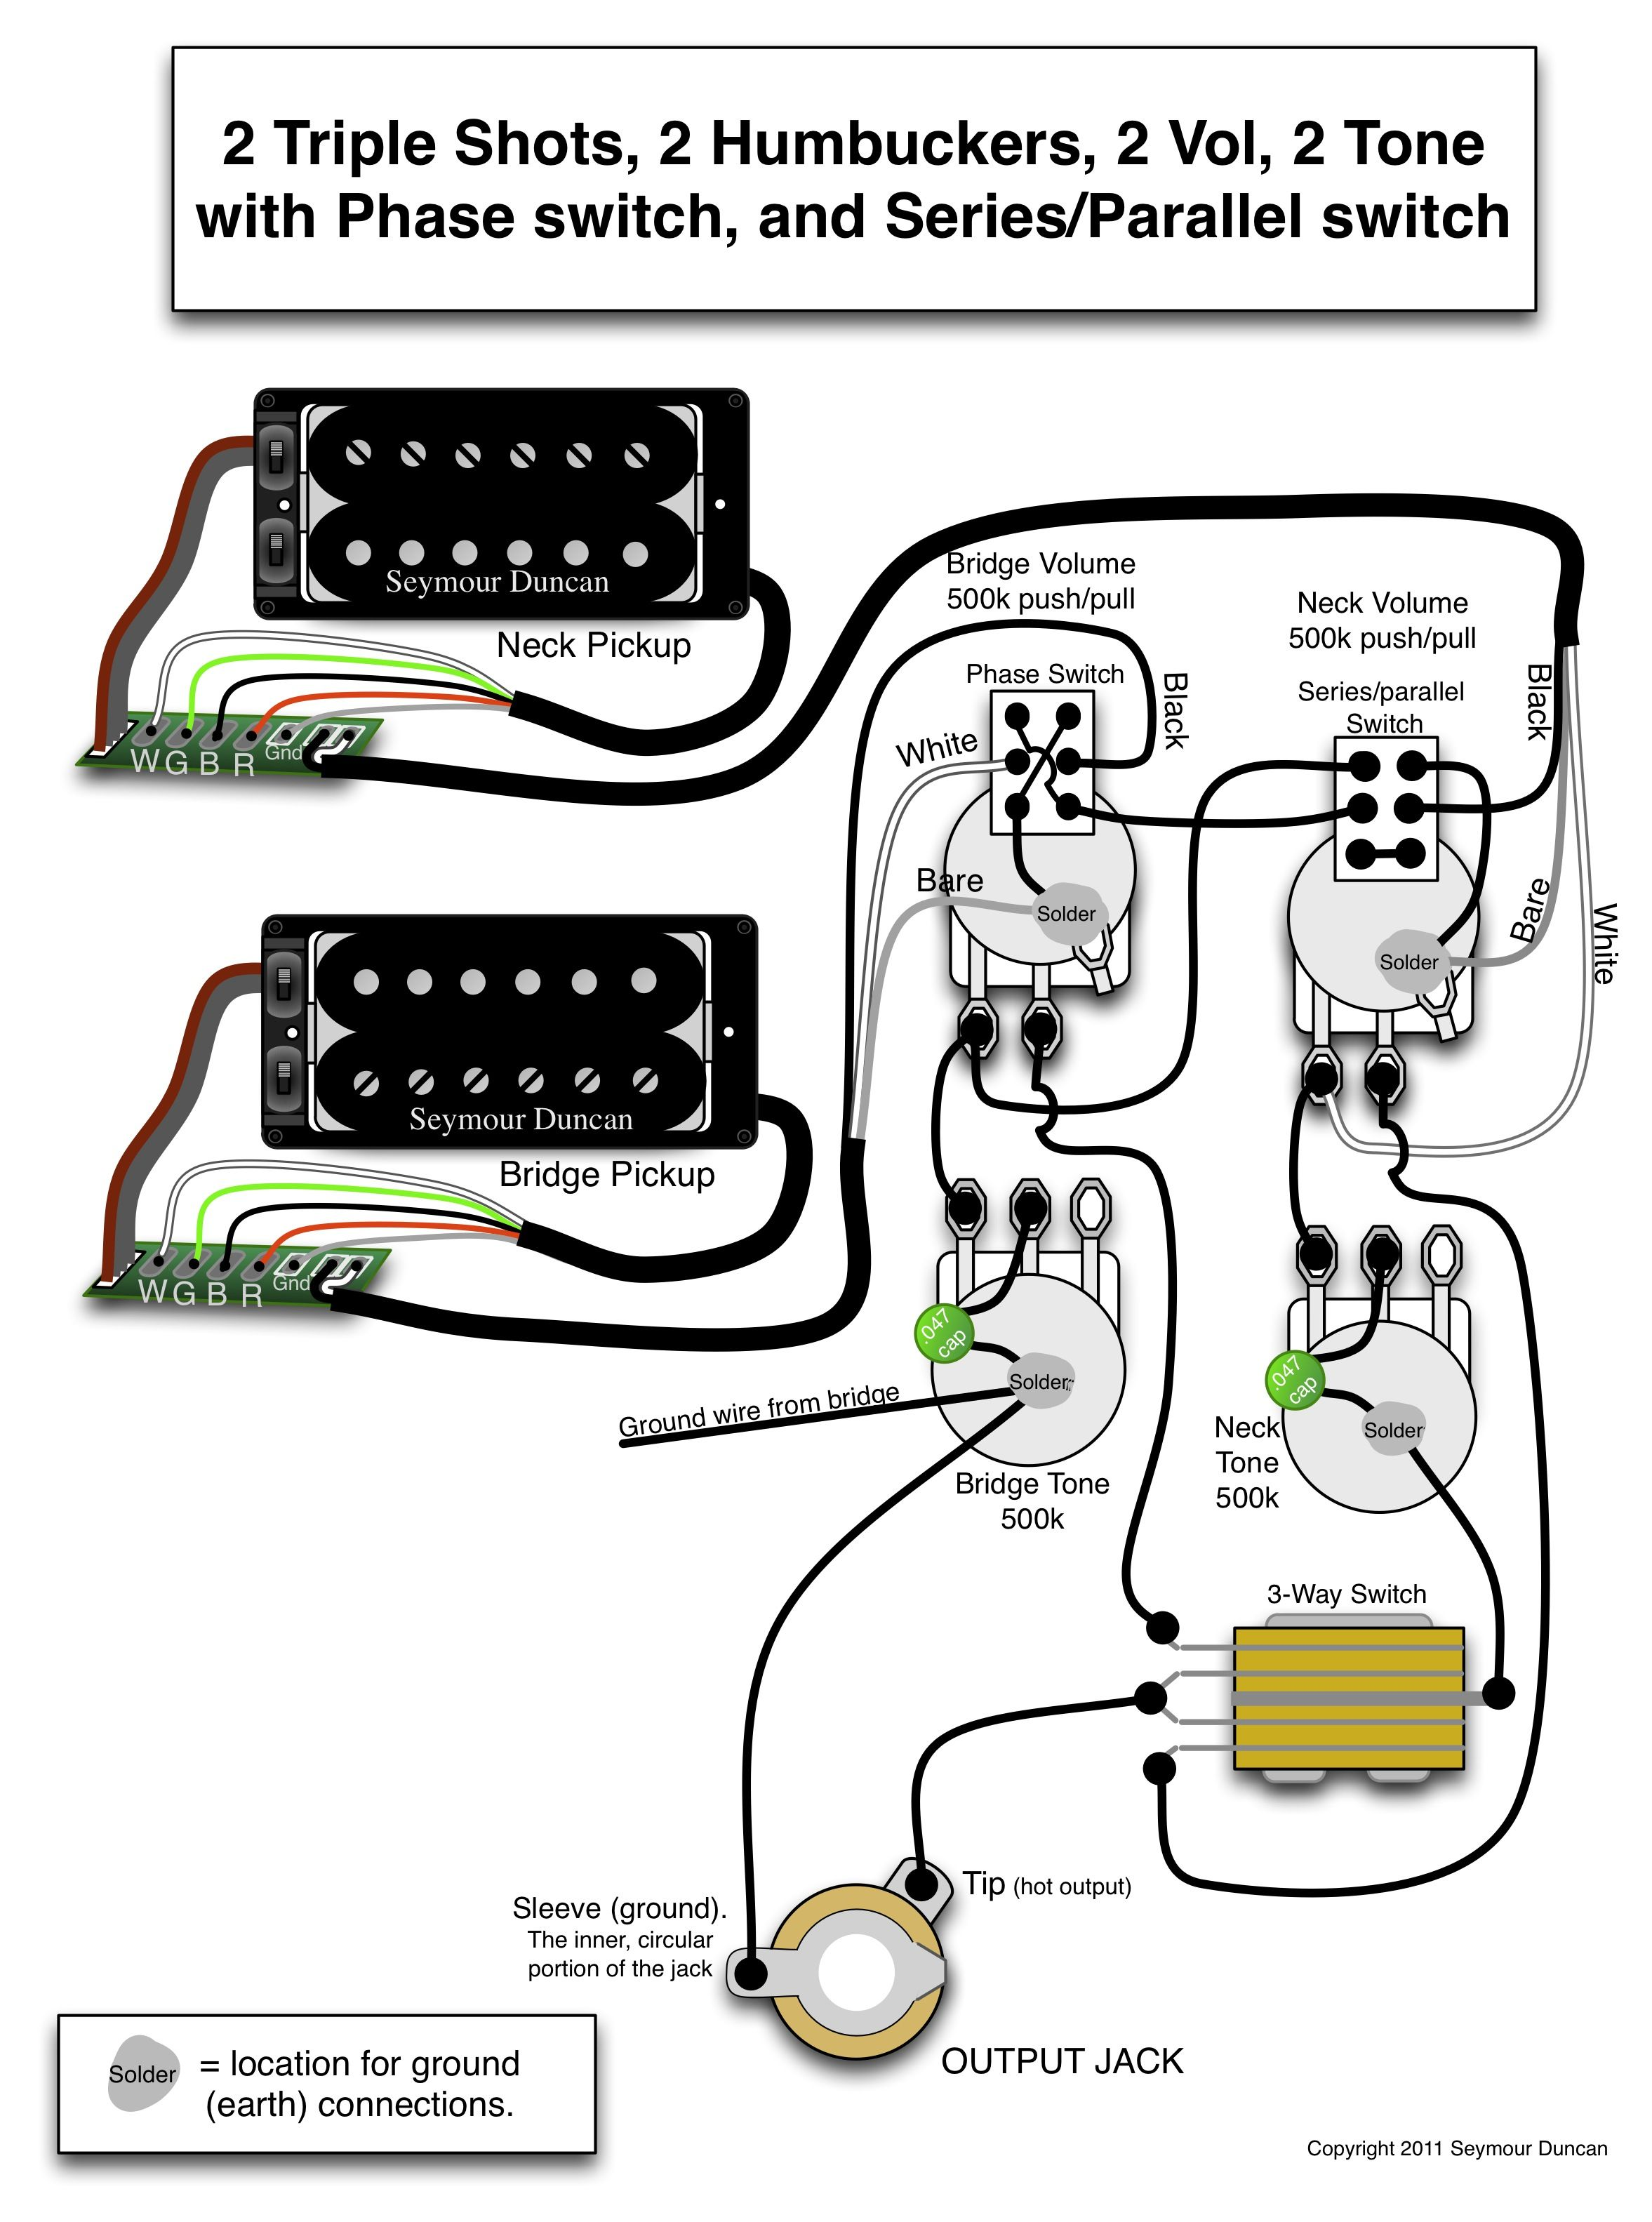 small resolution of seymour duncan wiring diagram 2 triple shots 2 humbuckers 2 vol 2 tone one with phase switch and the other with series parallel switch